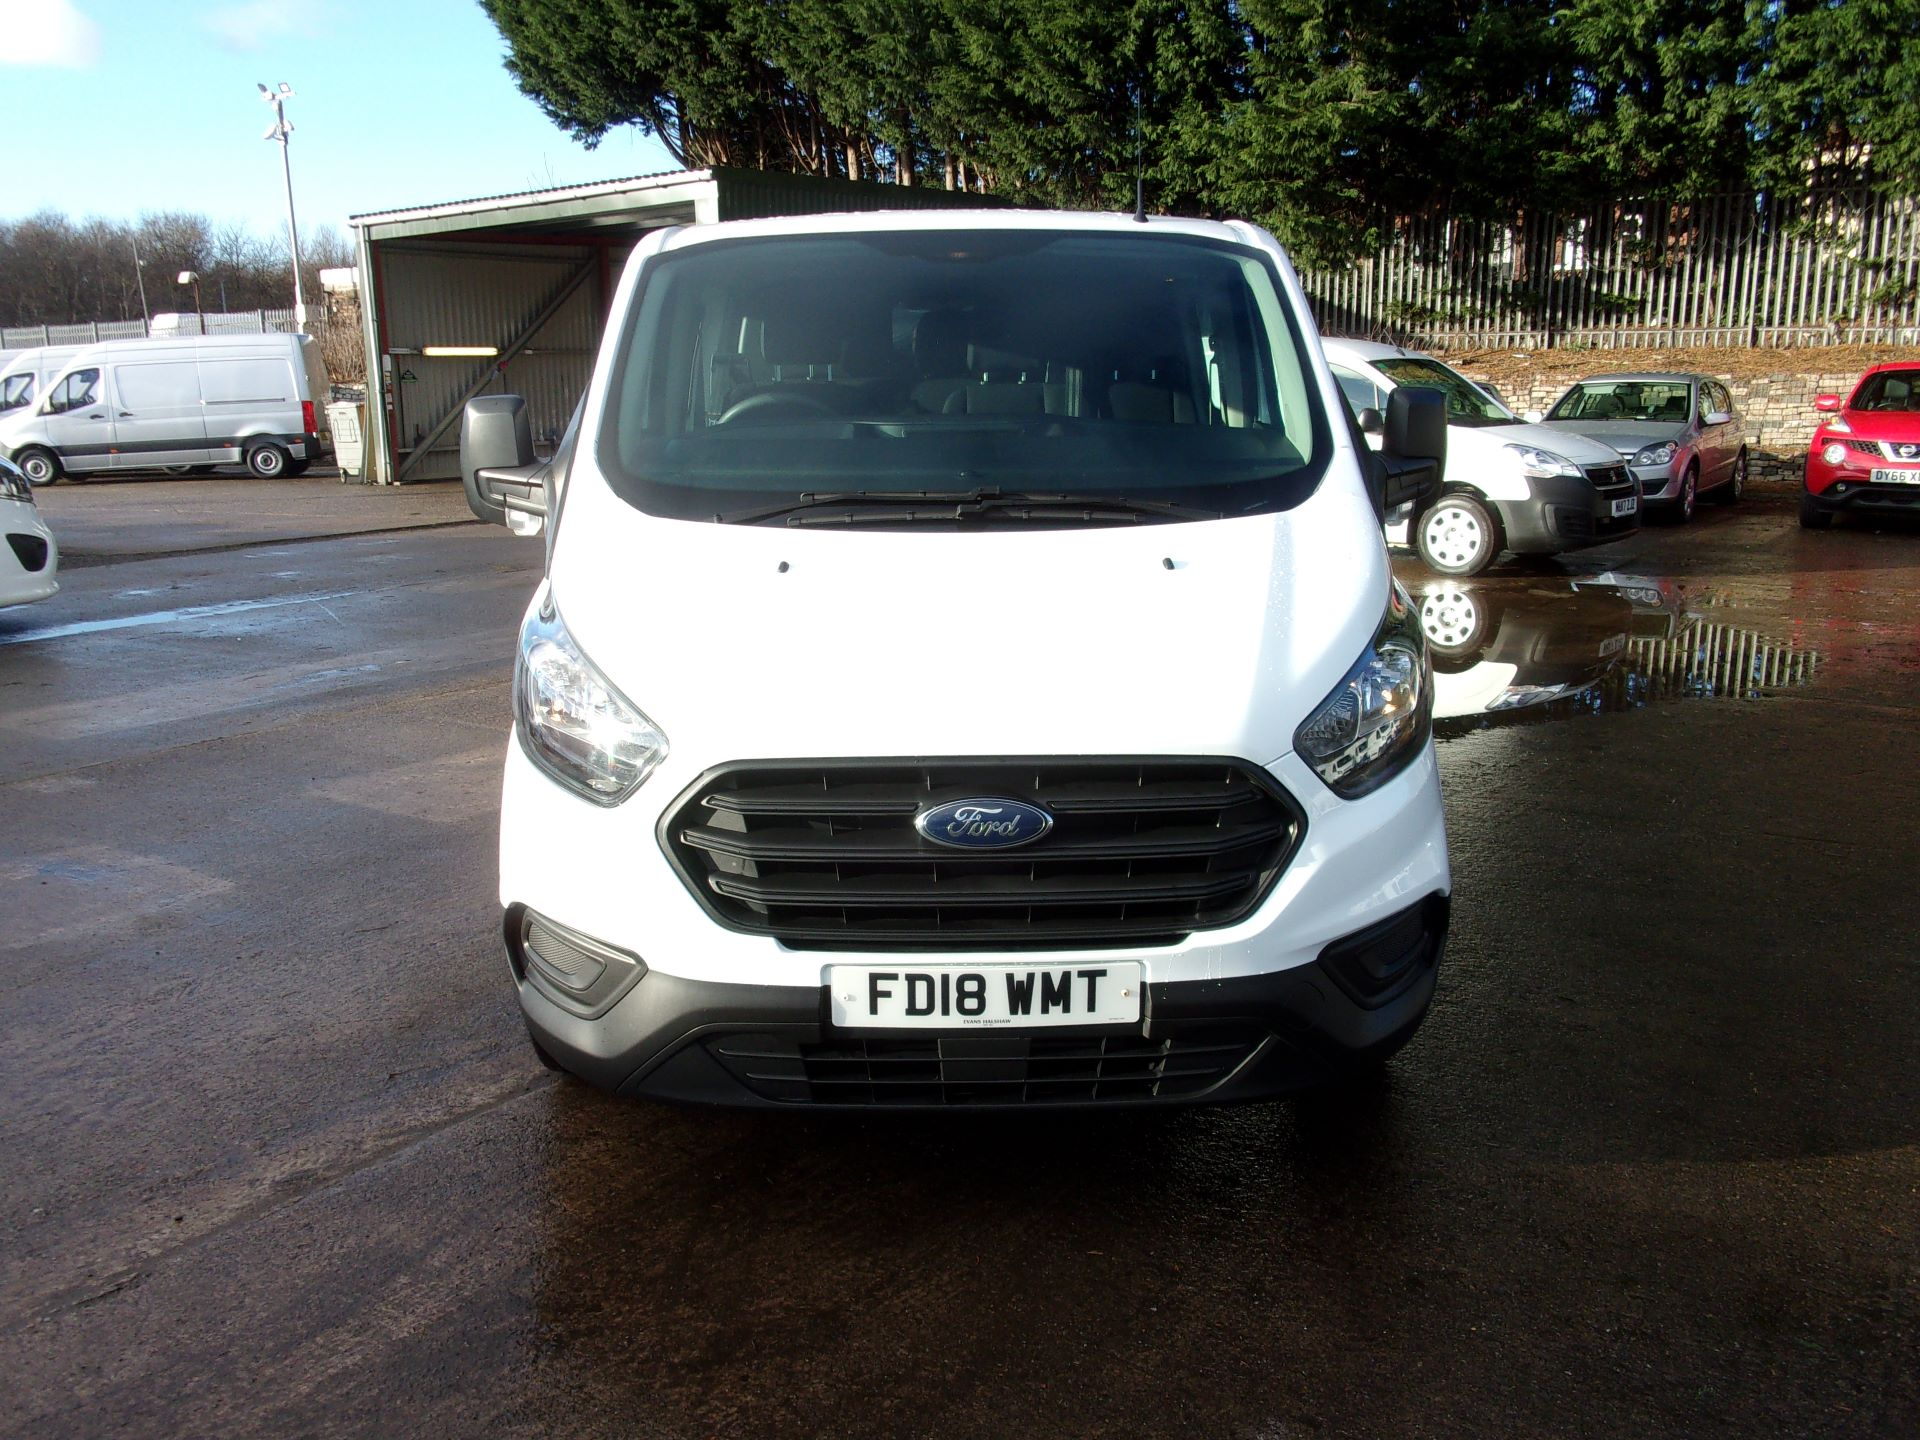 2018 Ford Transit Custom 300 L1 DIESEL FWD 2.0 TDCI 105PS LOW ROOF DOUBLE CAB VAN EURO 6 (FD18WMT) Image 15